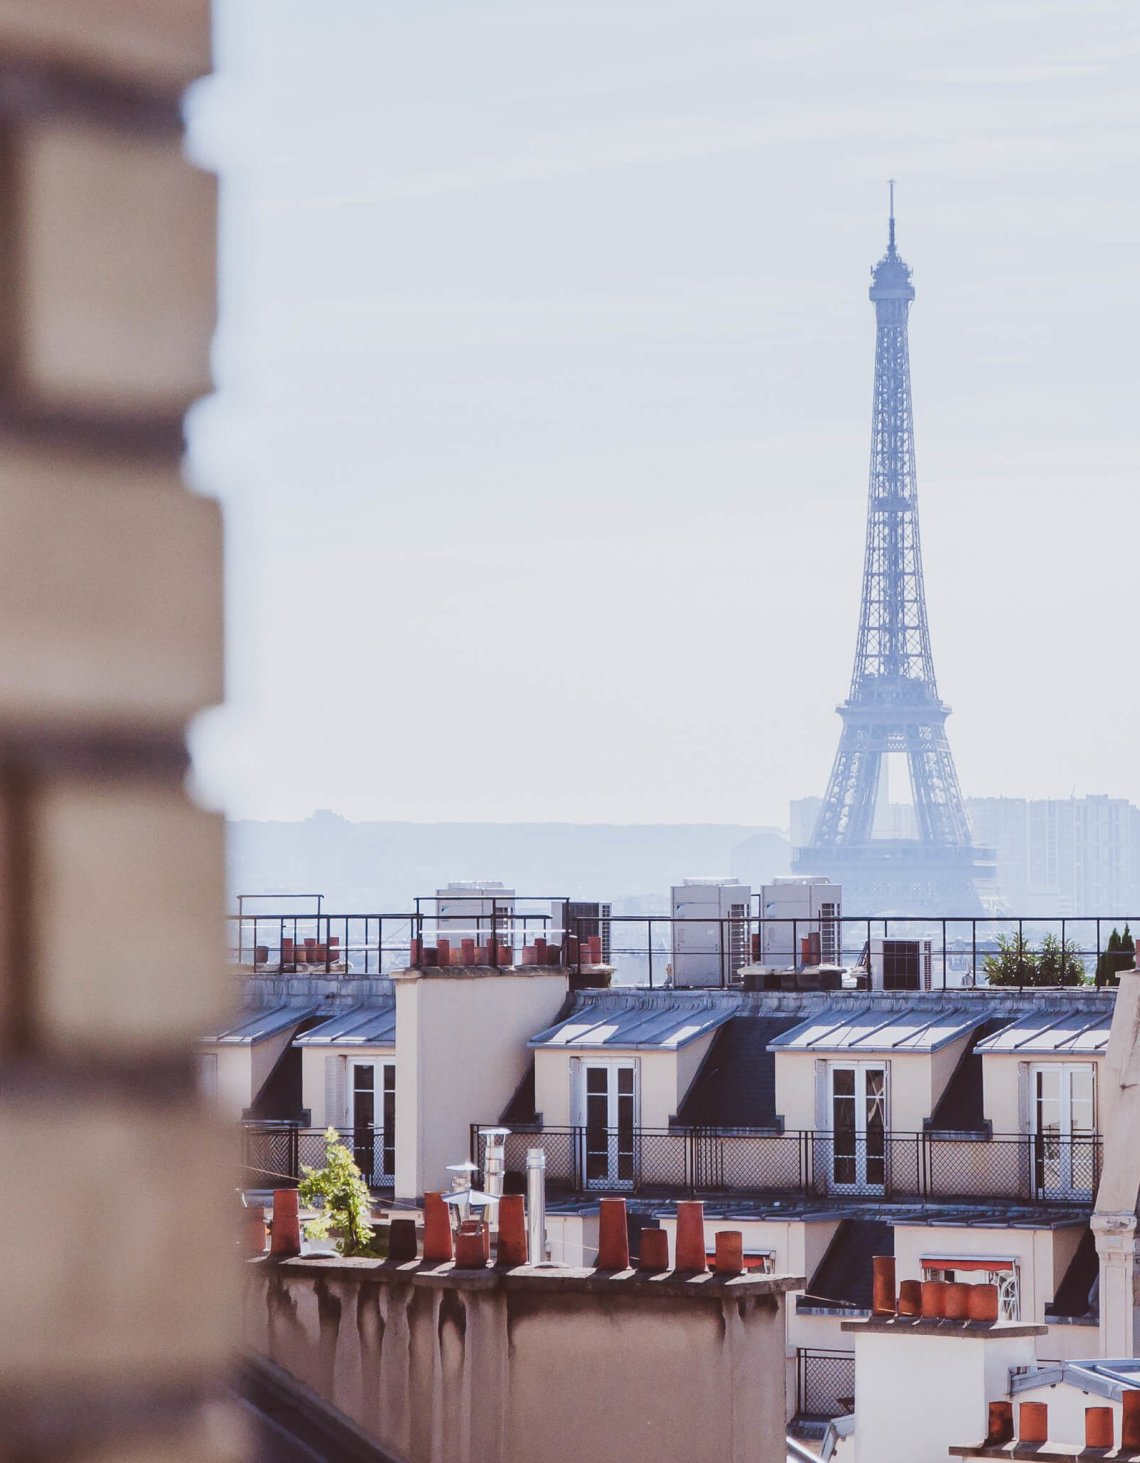 Distant Eiffel Tower from over the roof tops in Paris